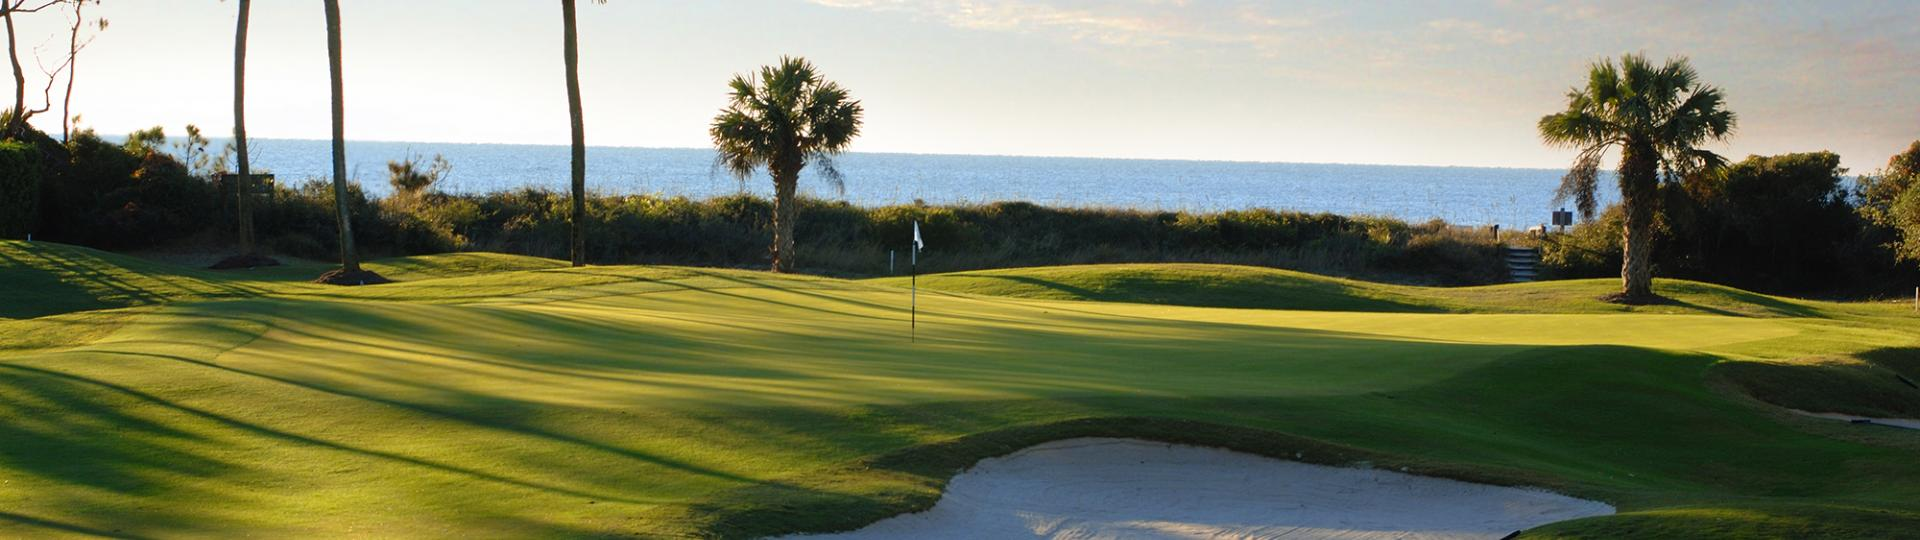 Island View Insider >> 9 Insider Tips On How To Do A Golf Trip On Hilton Head Island